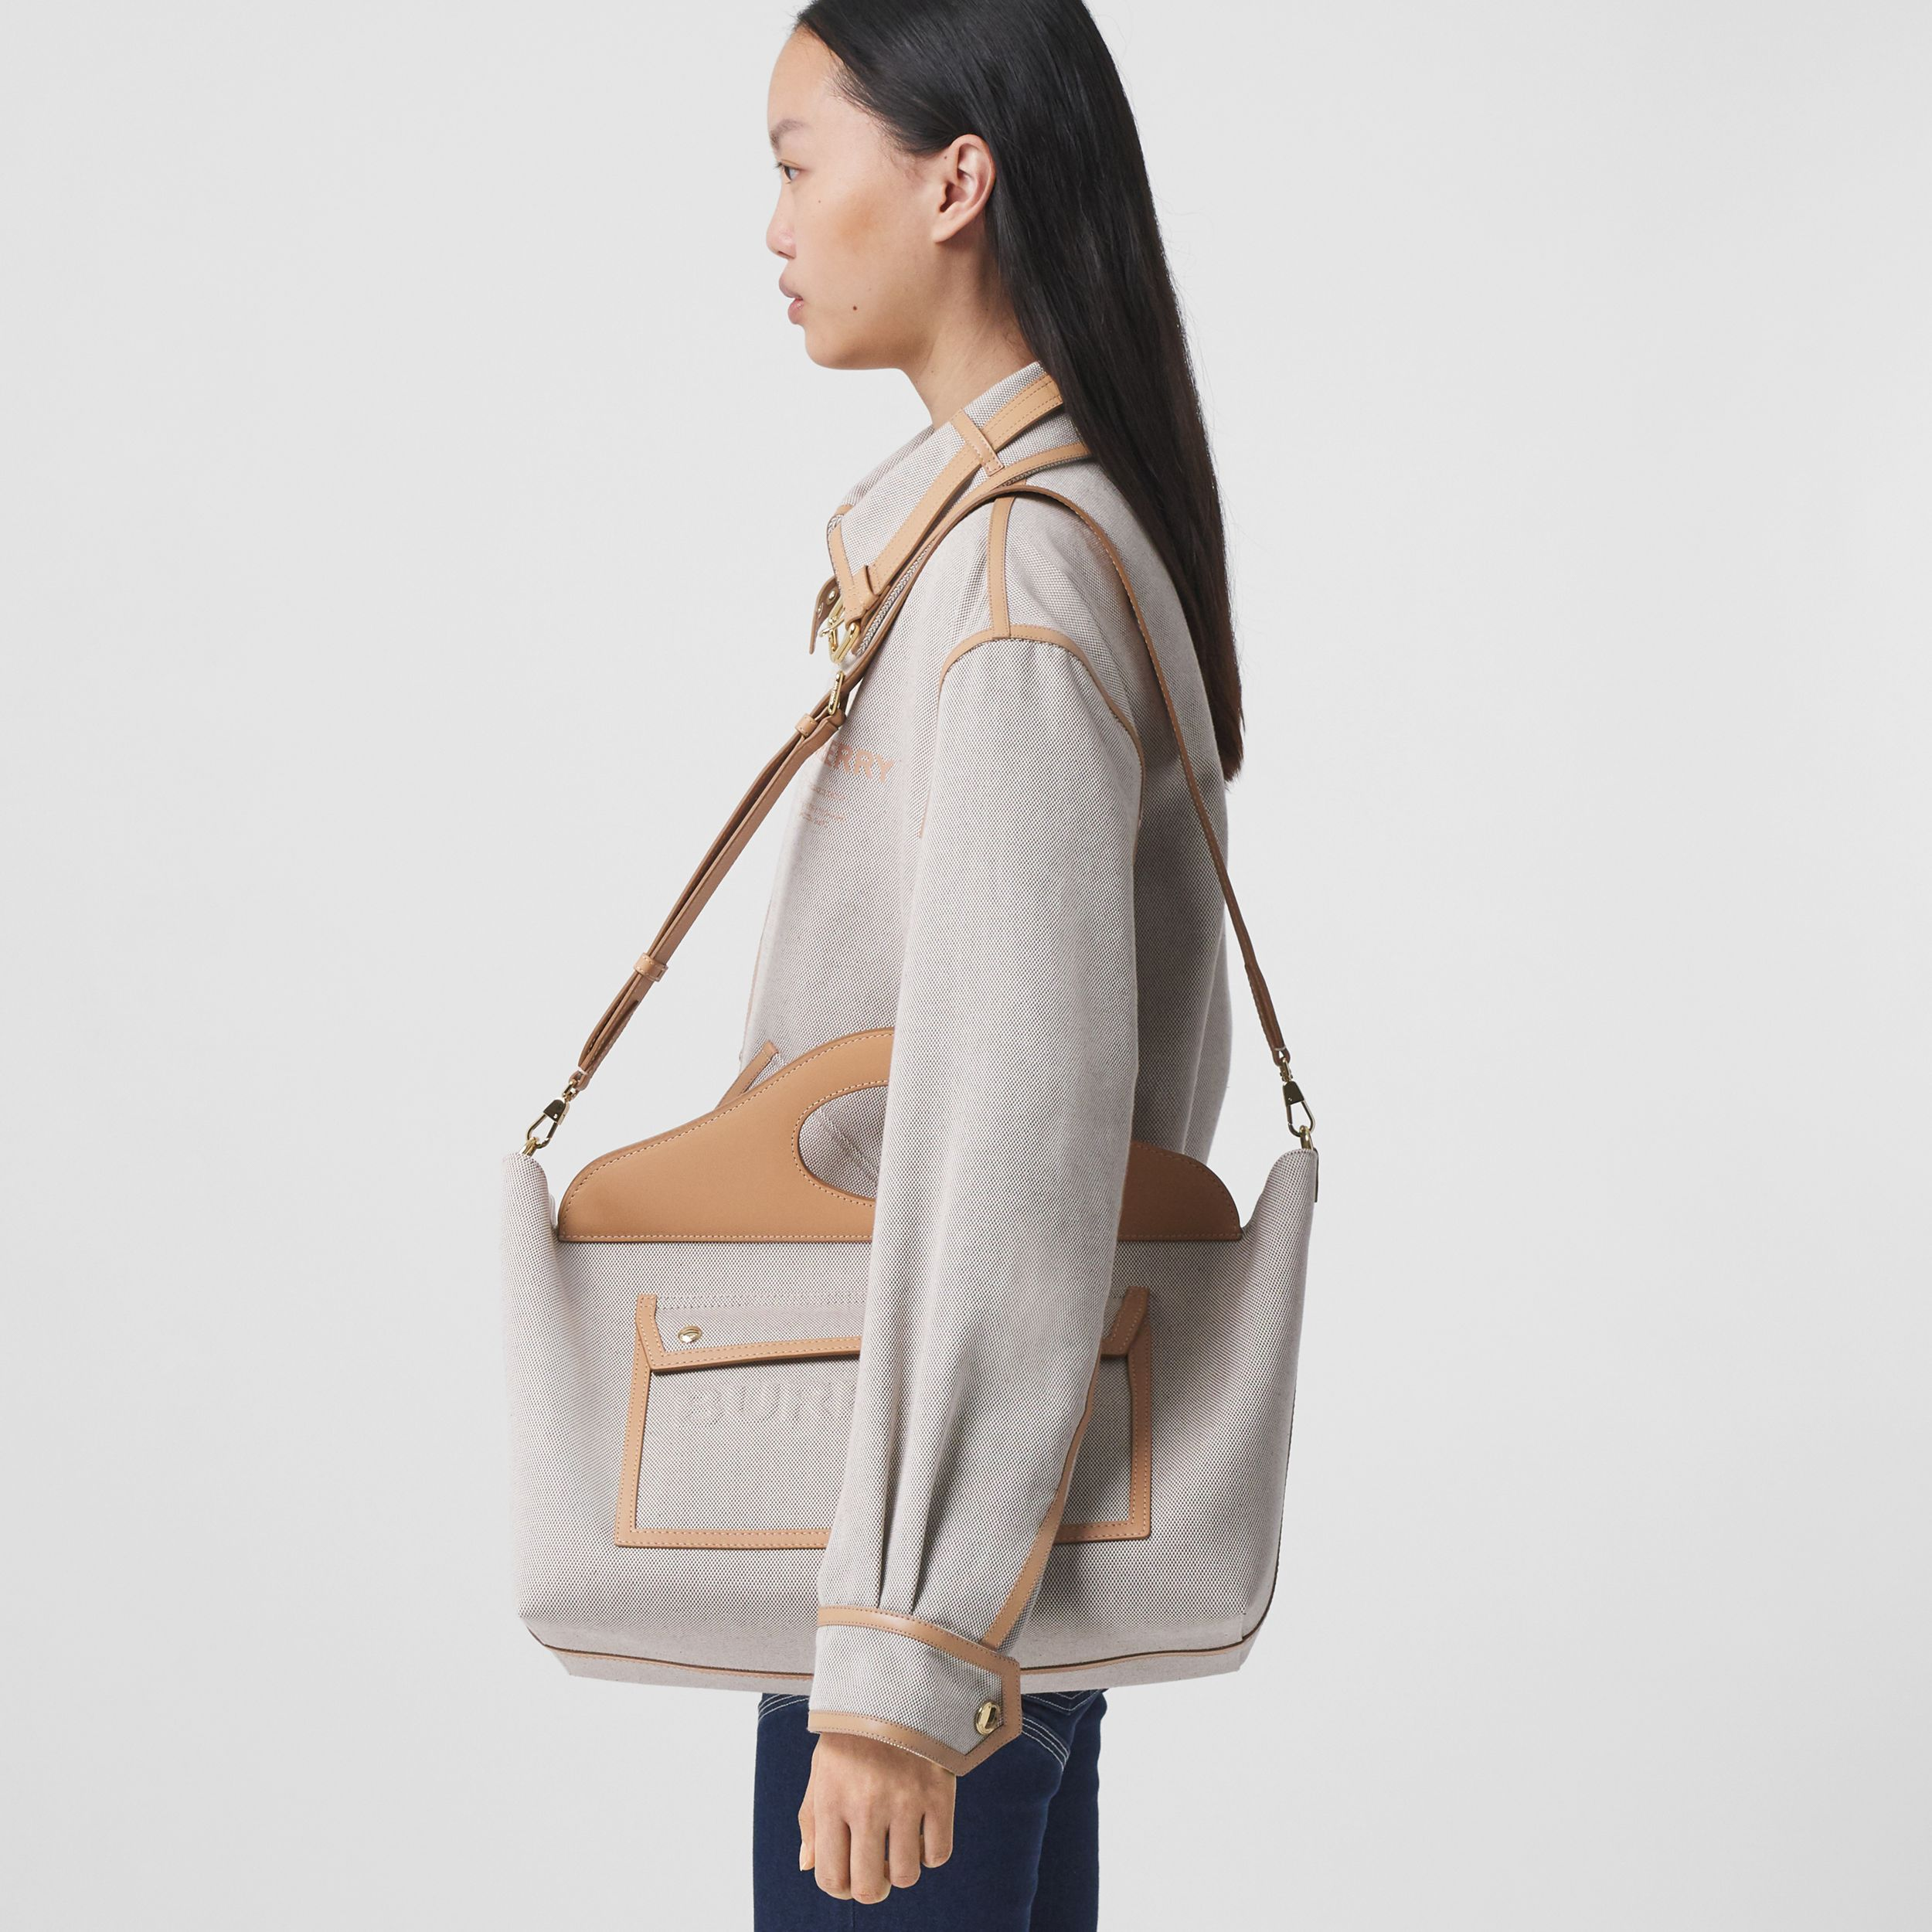 Medium Cotton Canvas and Leather Soft Pocket Tote in Fawn/warm Sand - Women | Burberry United Kingdom - 3